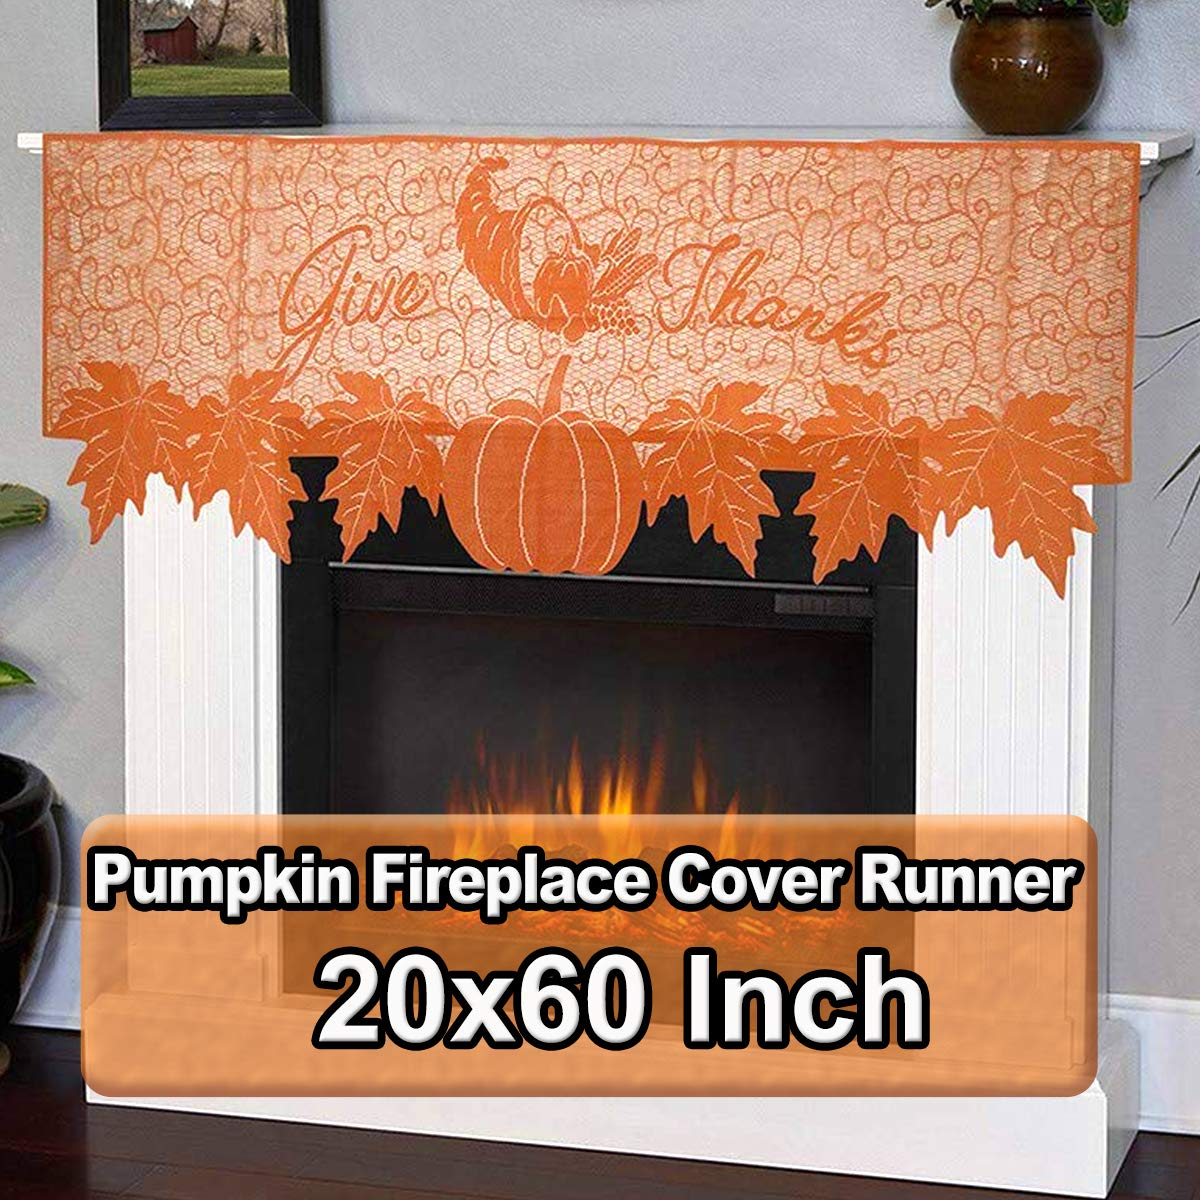 Thanksgiving Decoration Lace Pumpkin Fireplace Mantle Scarf Cover Runner 20x60 Inch Orange Pumpkin Maple Leaf Table Cover For Fall Seasonal Decor